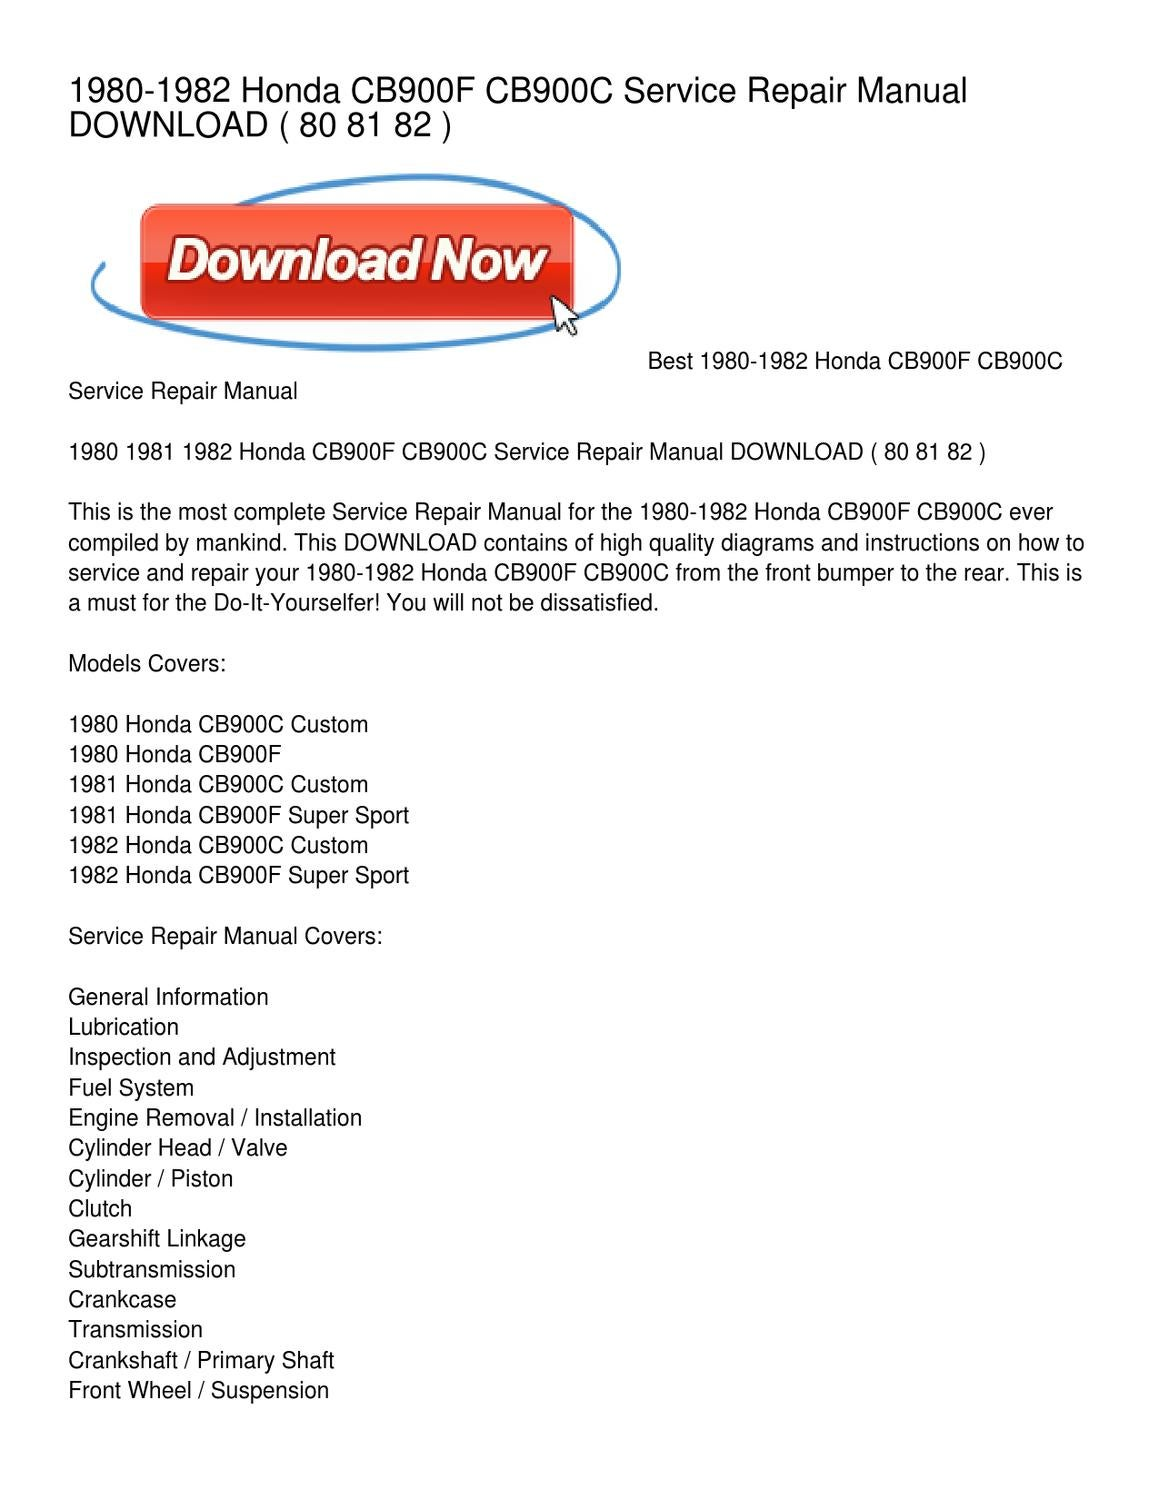 Diagram Honda Cb900 Trusted Schematics 1981 Wiring 1980 1982 Cb900f Cb900c Service Repair Manual Download By Cafe Racer